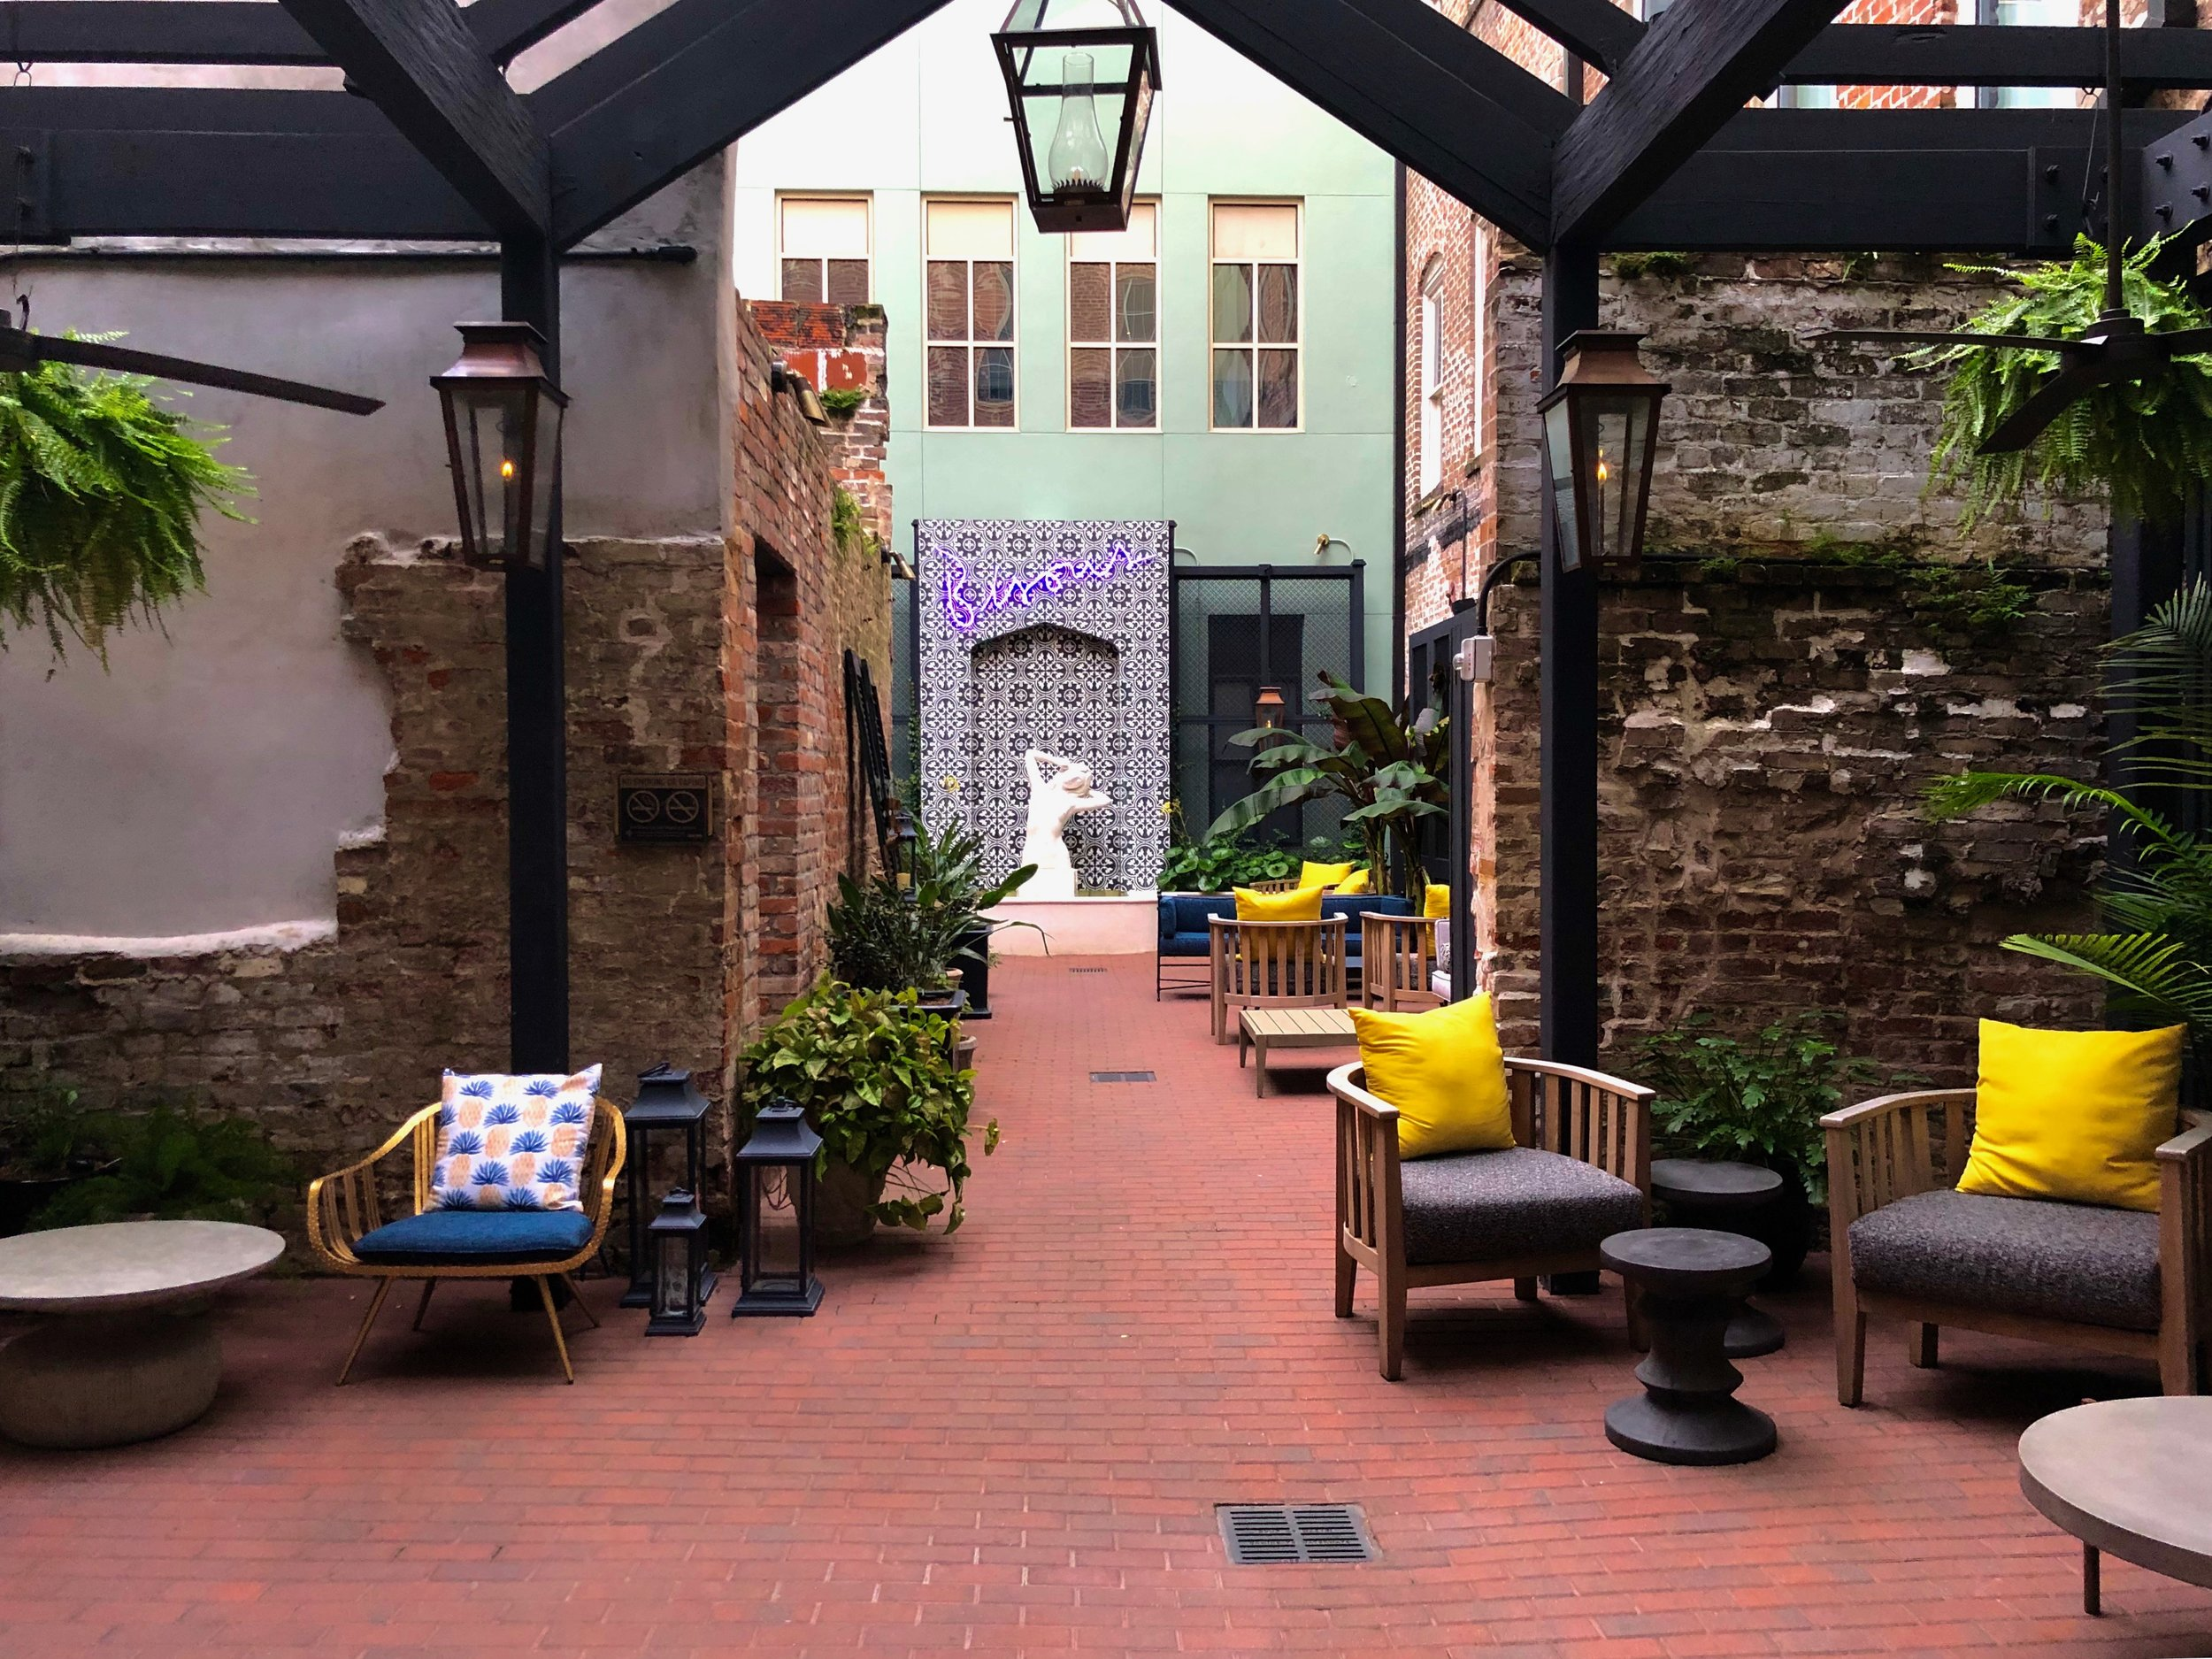 Outdoor space at the Eliza Jane (New Orleans, 2019  ©  JOEL ANG PHOTOGRAPHY)